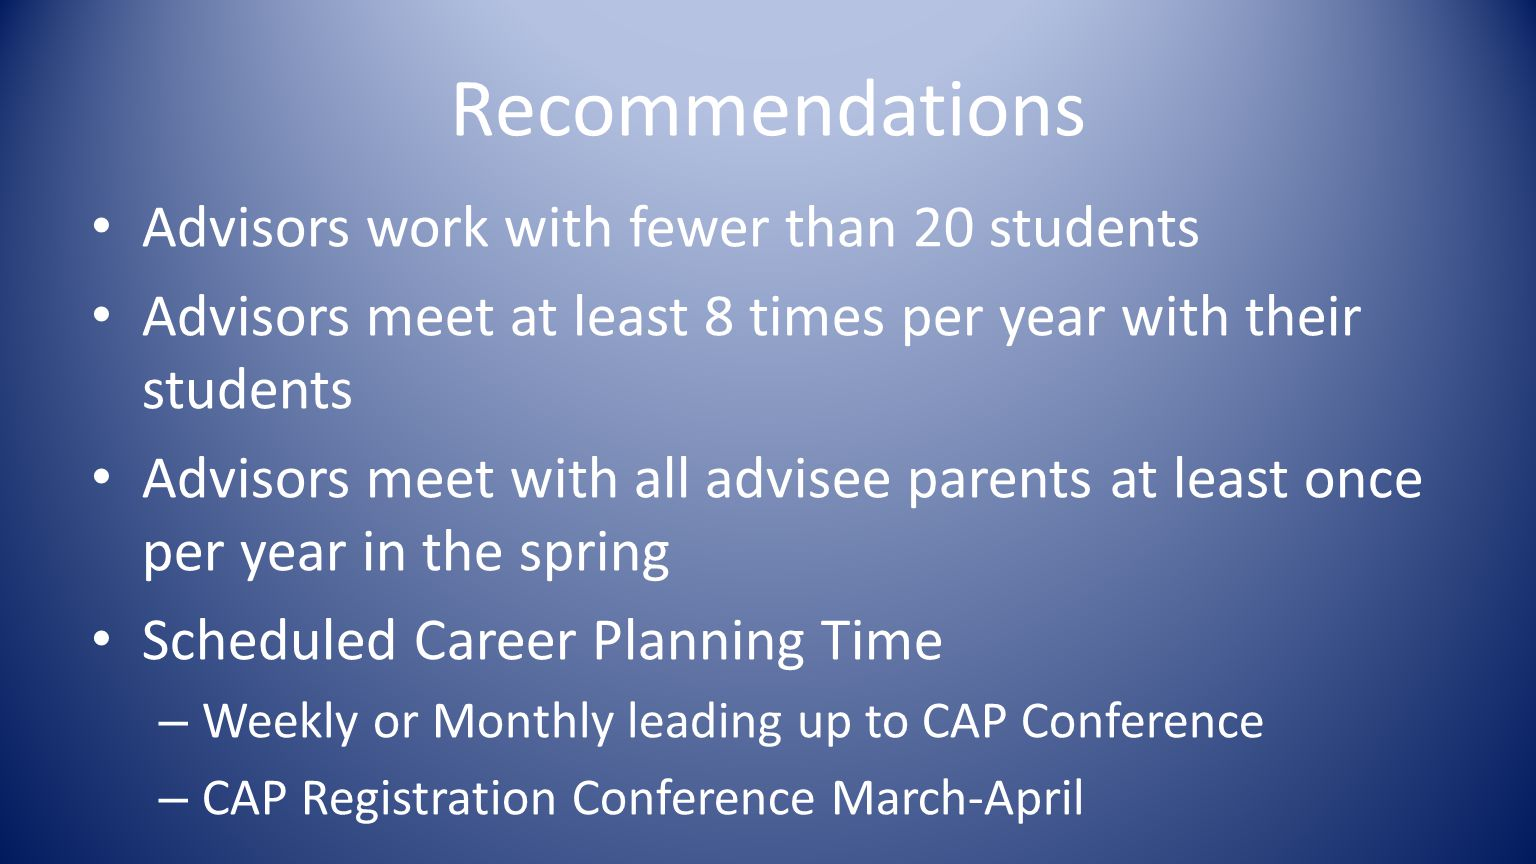 Recommendations Advisors work with fewer than 20 students Advisors meet at least 8 times per year with their students Advisors meet with all advisee parents at least once per year in the spring Scheduled Career Planning Time – Weekly or Monthly leading up to CAP Conference – CAP Registration Conference March-April